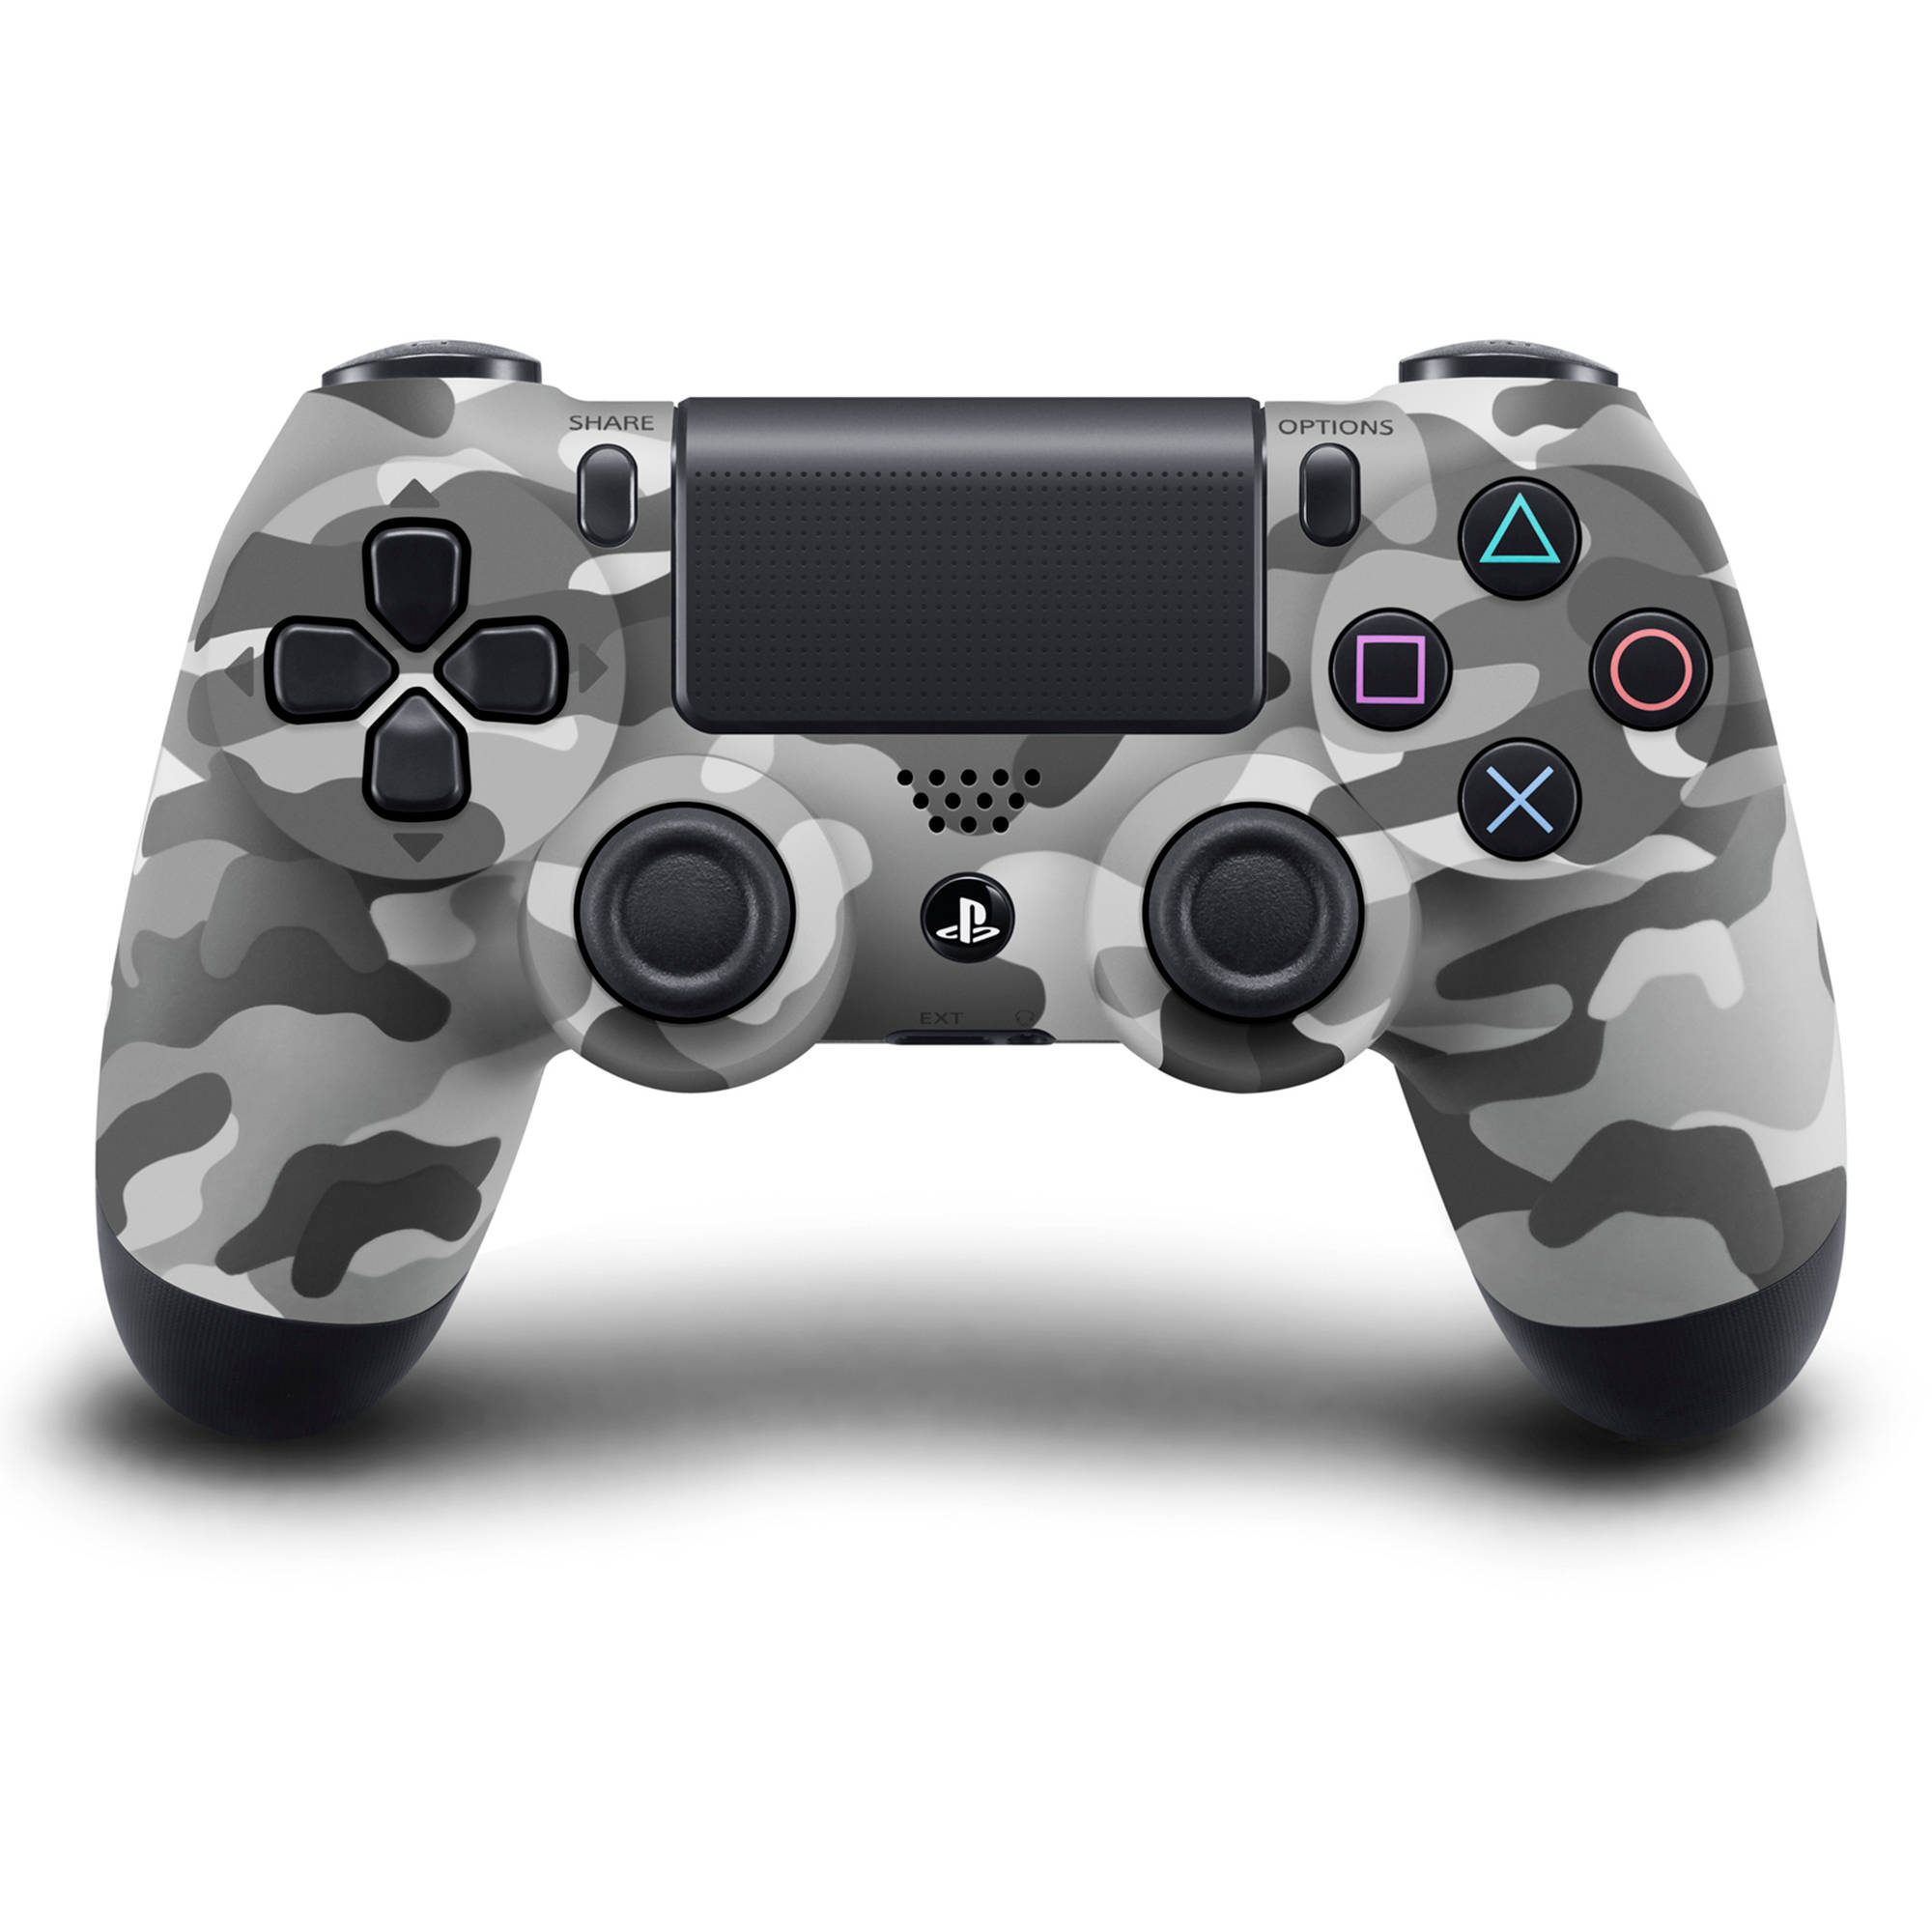 playstation 4 accessories ps4 accessories controllers headsets sony dualshock 4 controller urban camo ps4